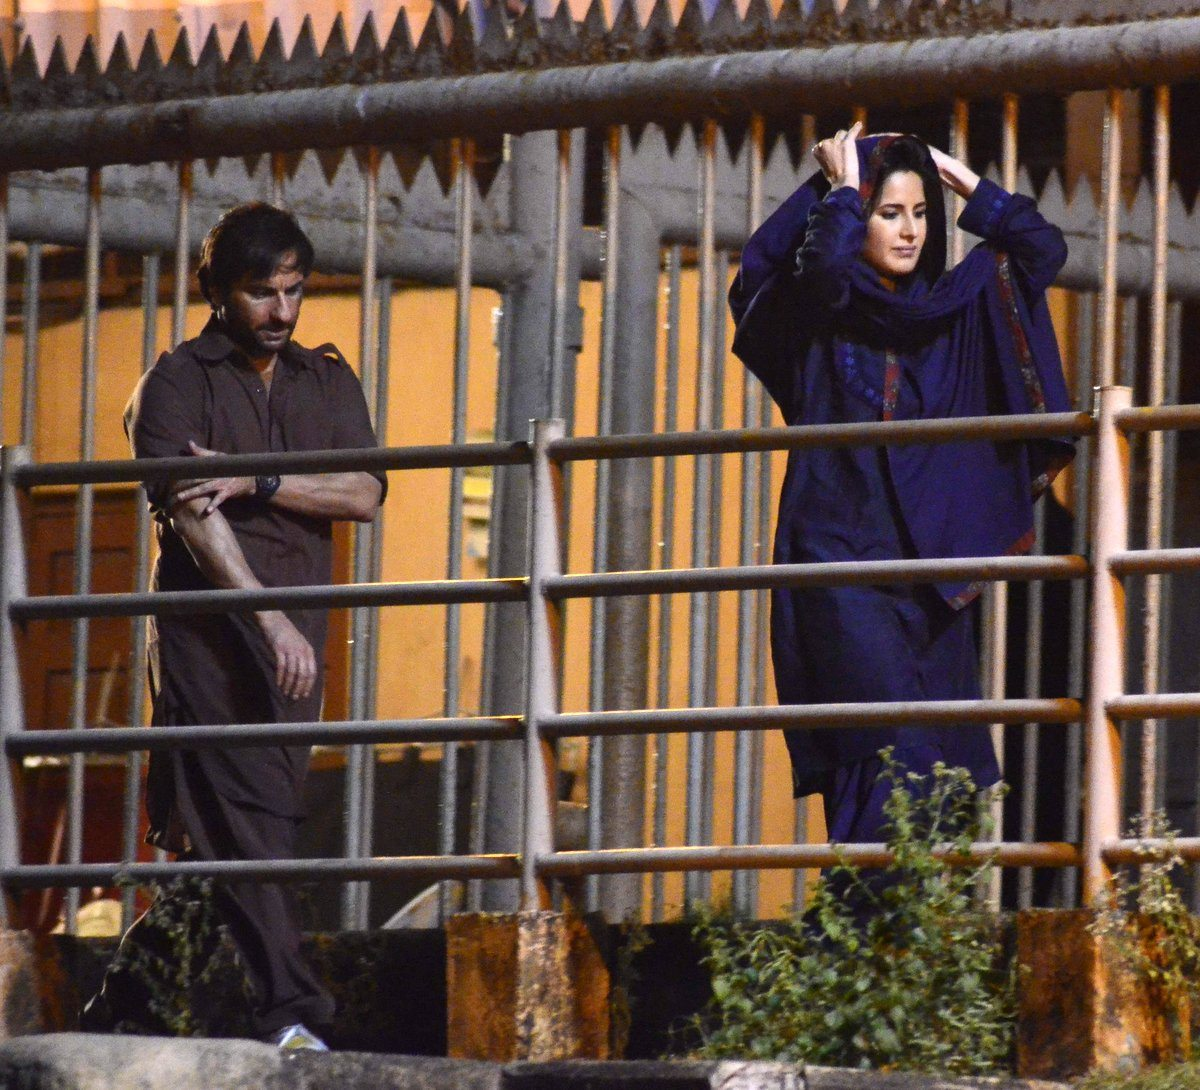 phantom movie sets (4)